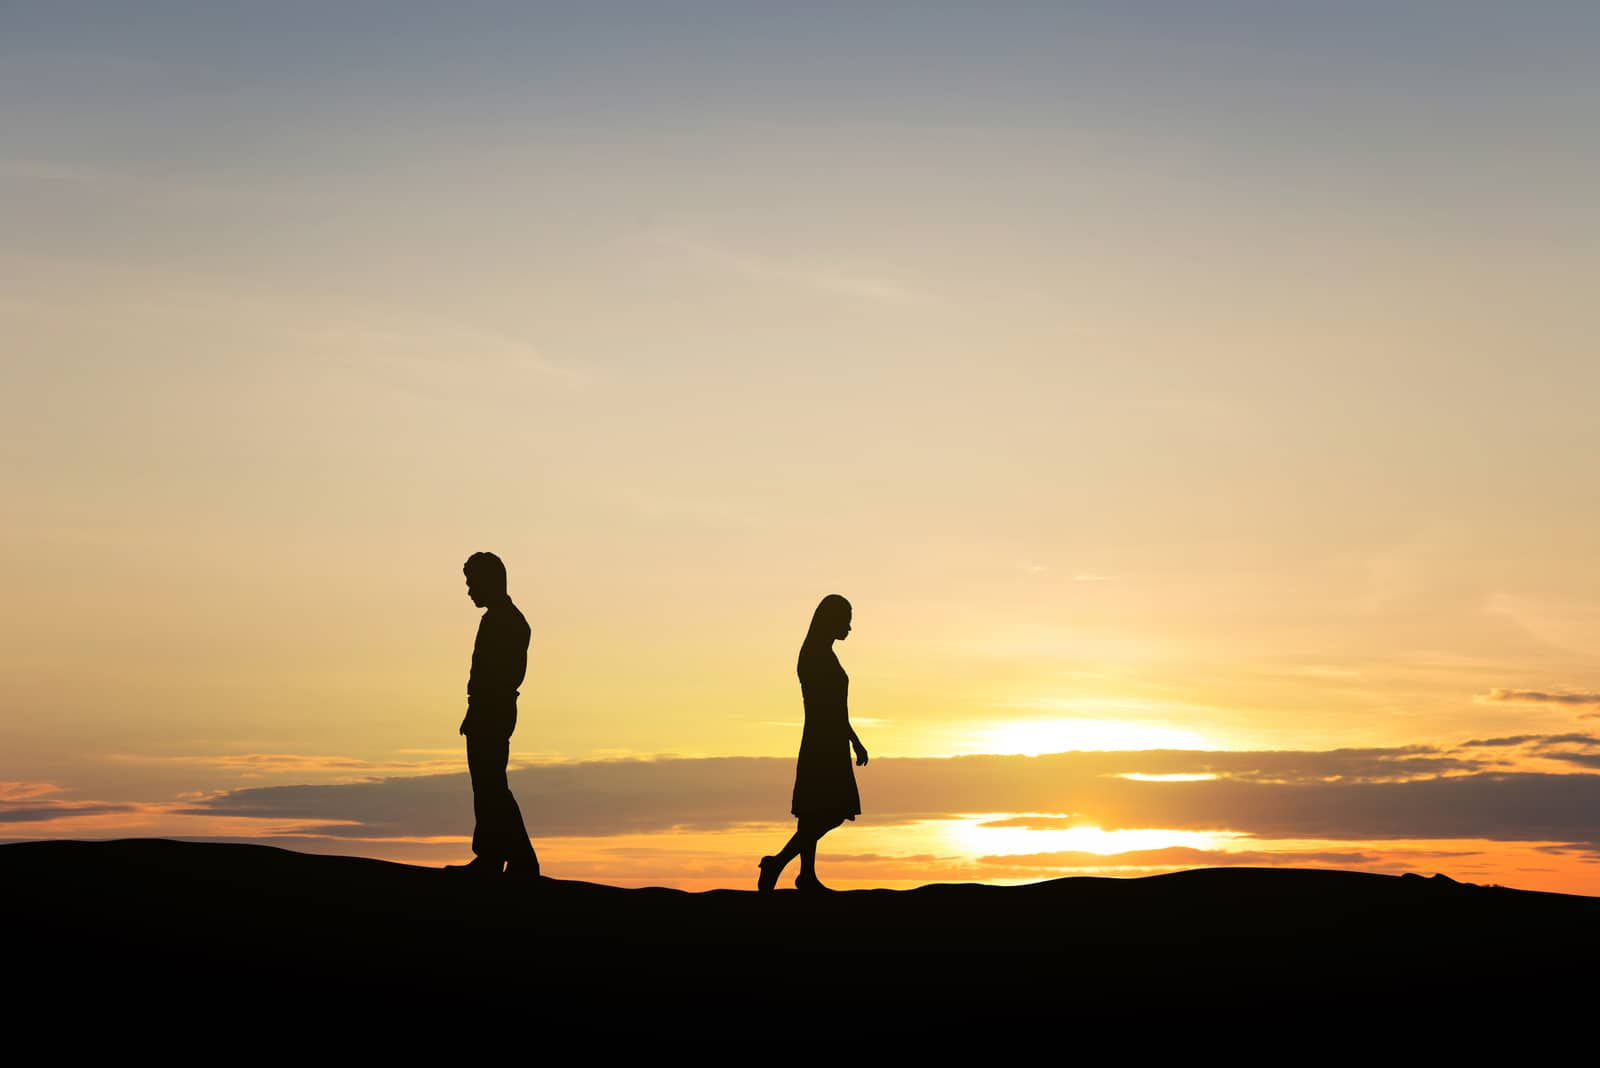 the woman walks away from the man